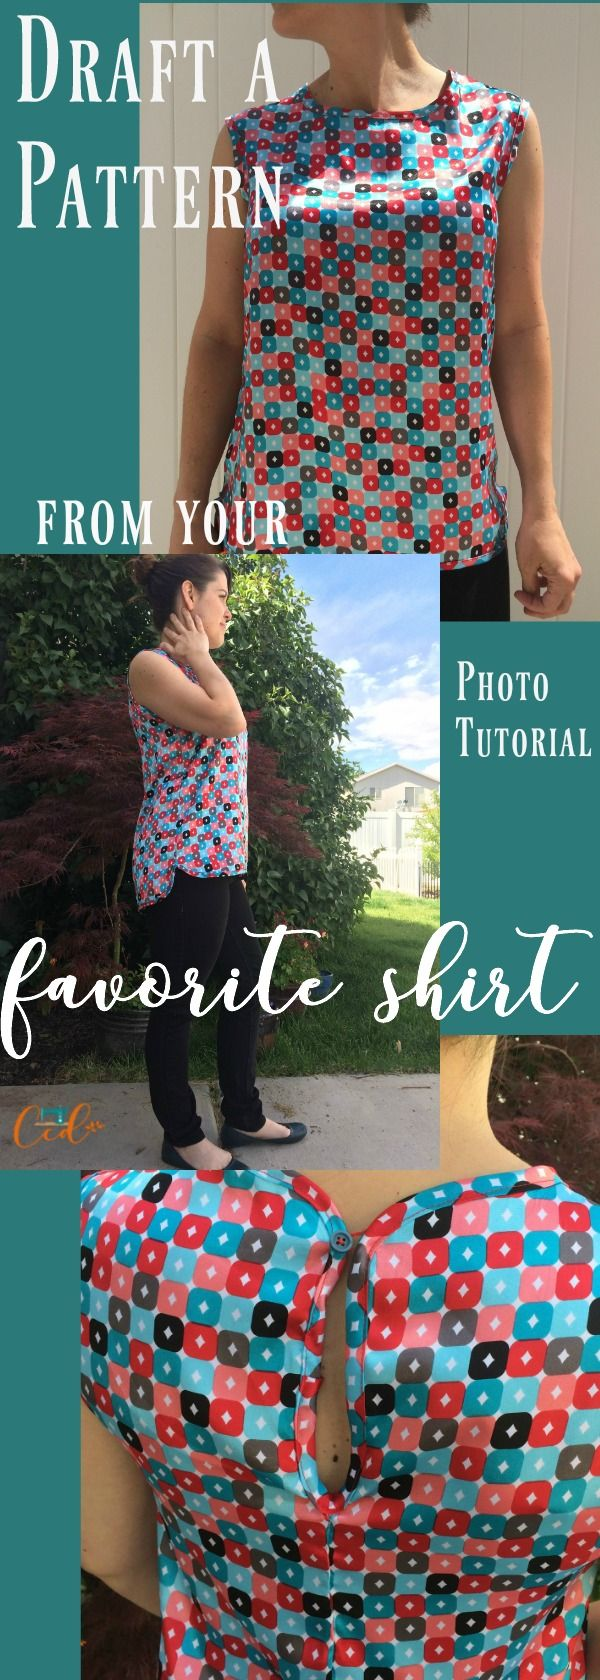 Sew a shirt from an existing shirt. Draw your own pattern | beginner sewing tutorial | learn to sew | sewing clothes | shirt sewing | diy shirt | how to sew a shirt | pattern making